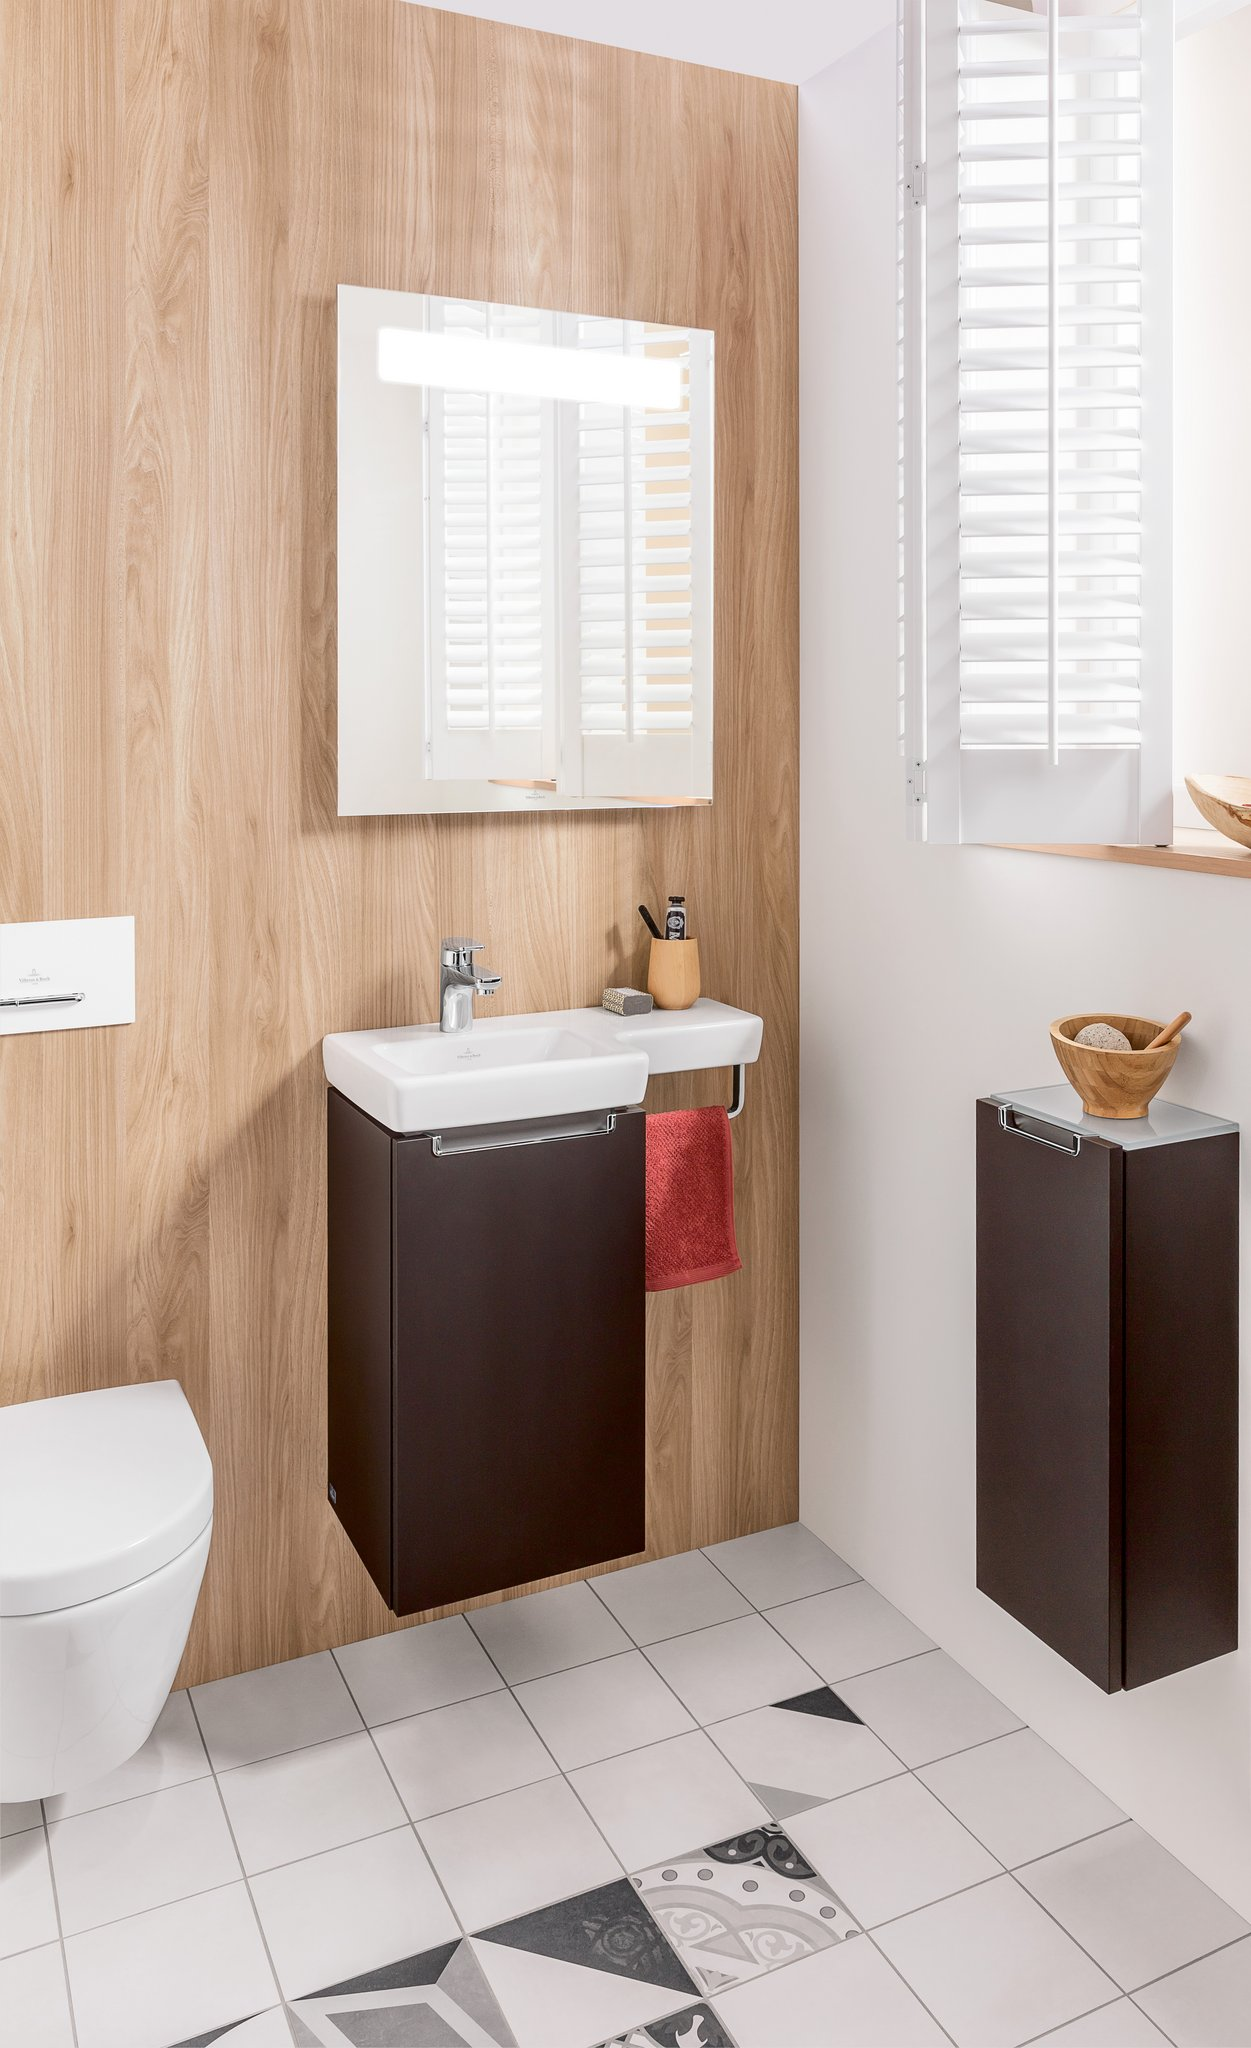 Subway 2 0 Toilet Seat And Cover Oval 9m69s1 Villeroy Amp Boch